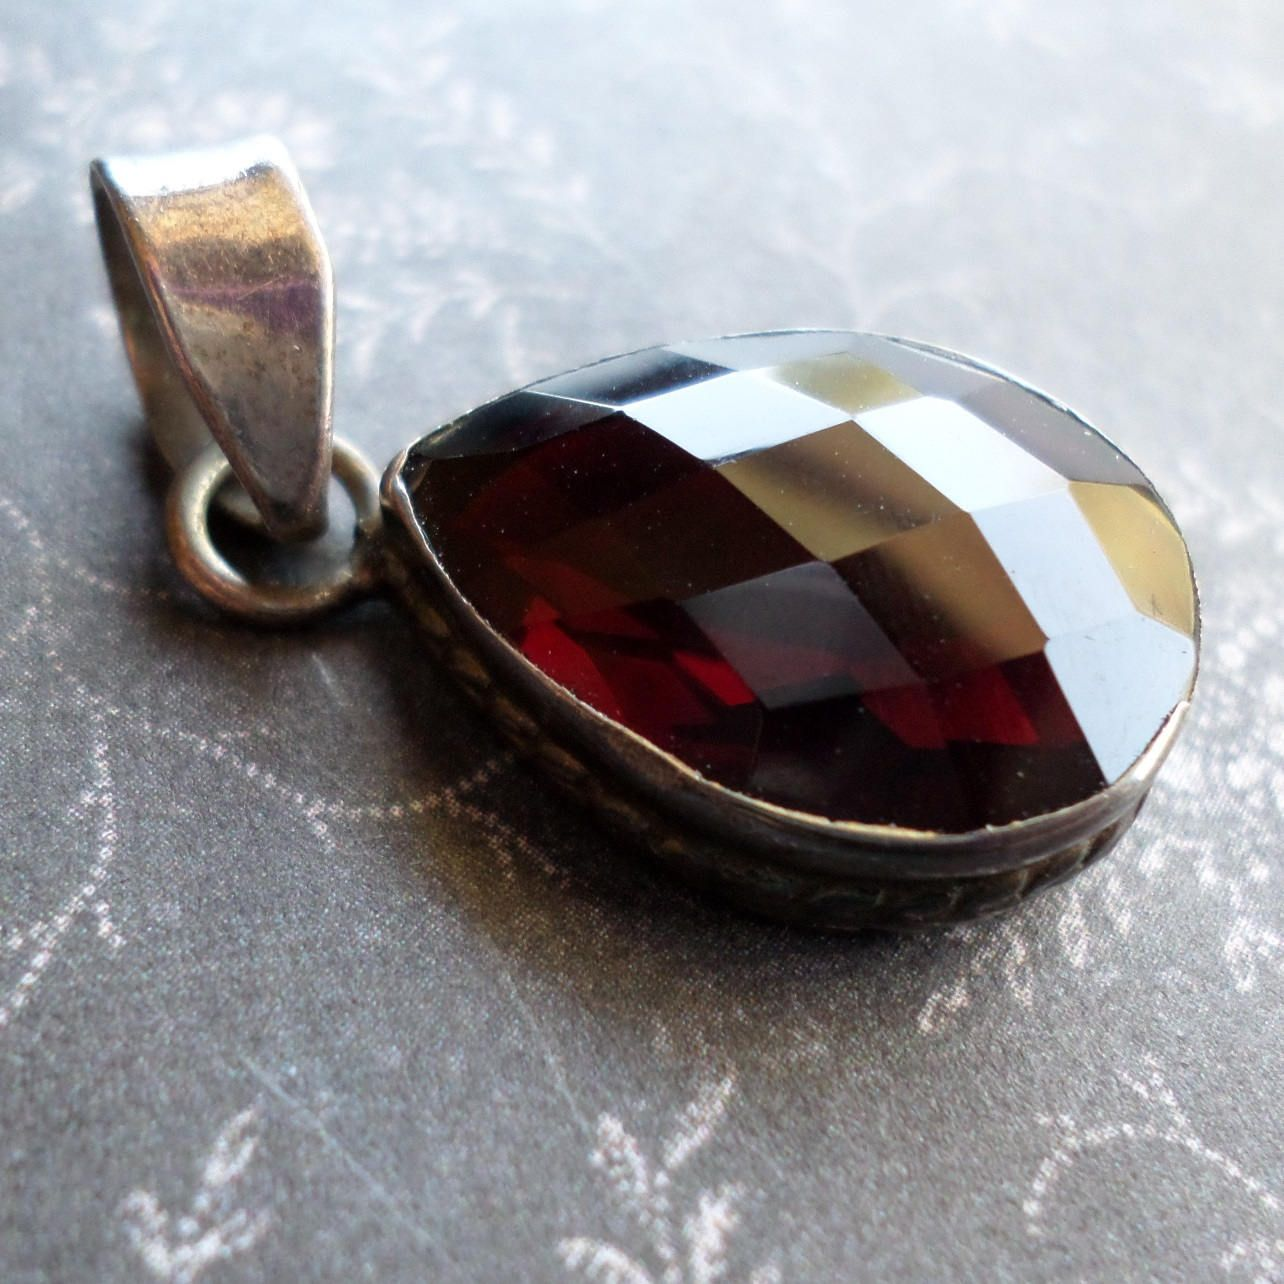 Vintage garnet pendant sterling silver wicca silver garnet vintage garnet pendant sterling silver wicca silver garnet pendant 925 silver garnet teardrop pendant witchcraft pagan love strength mozeypictures Image collections